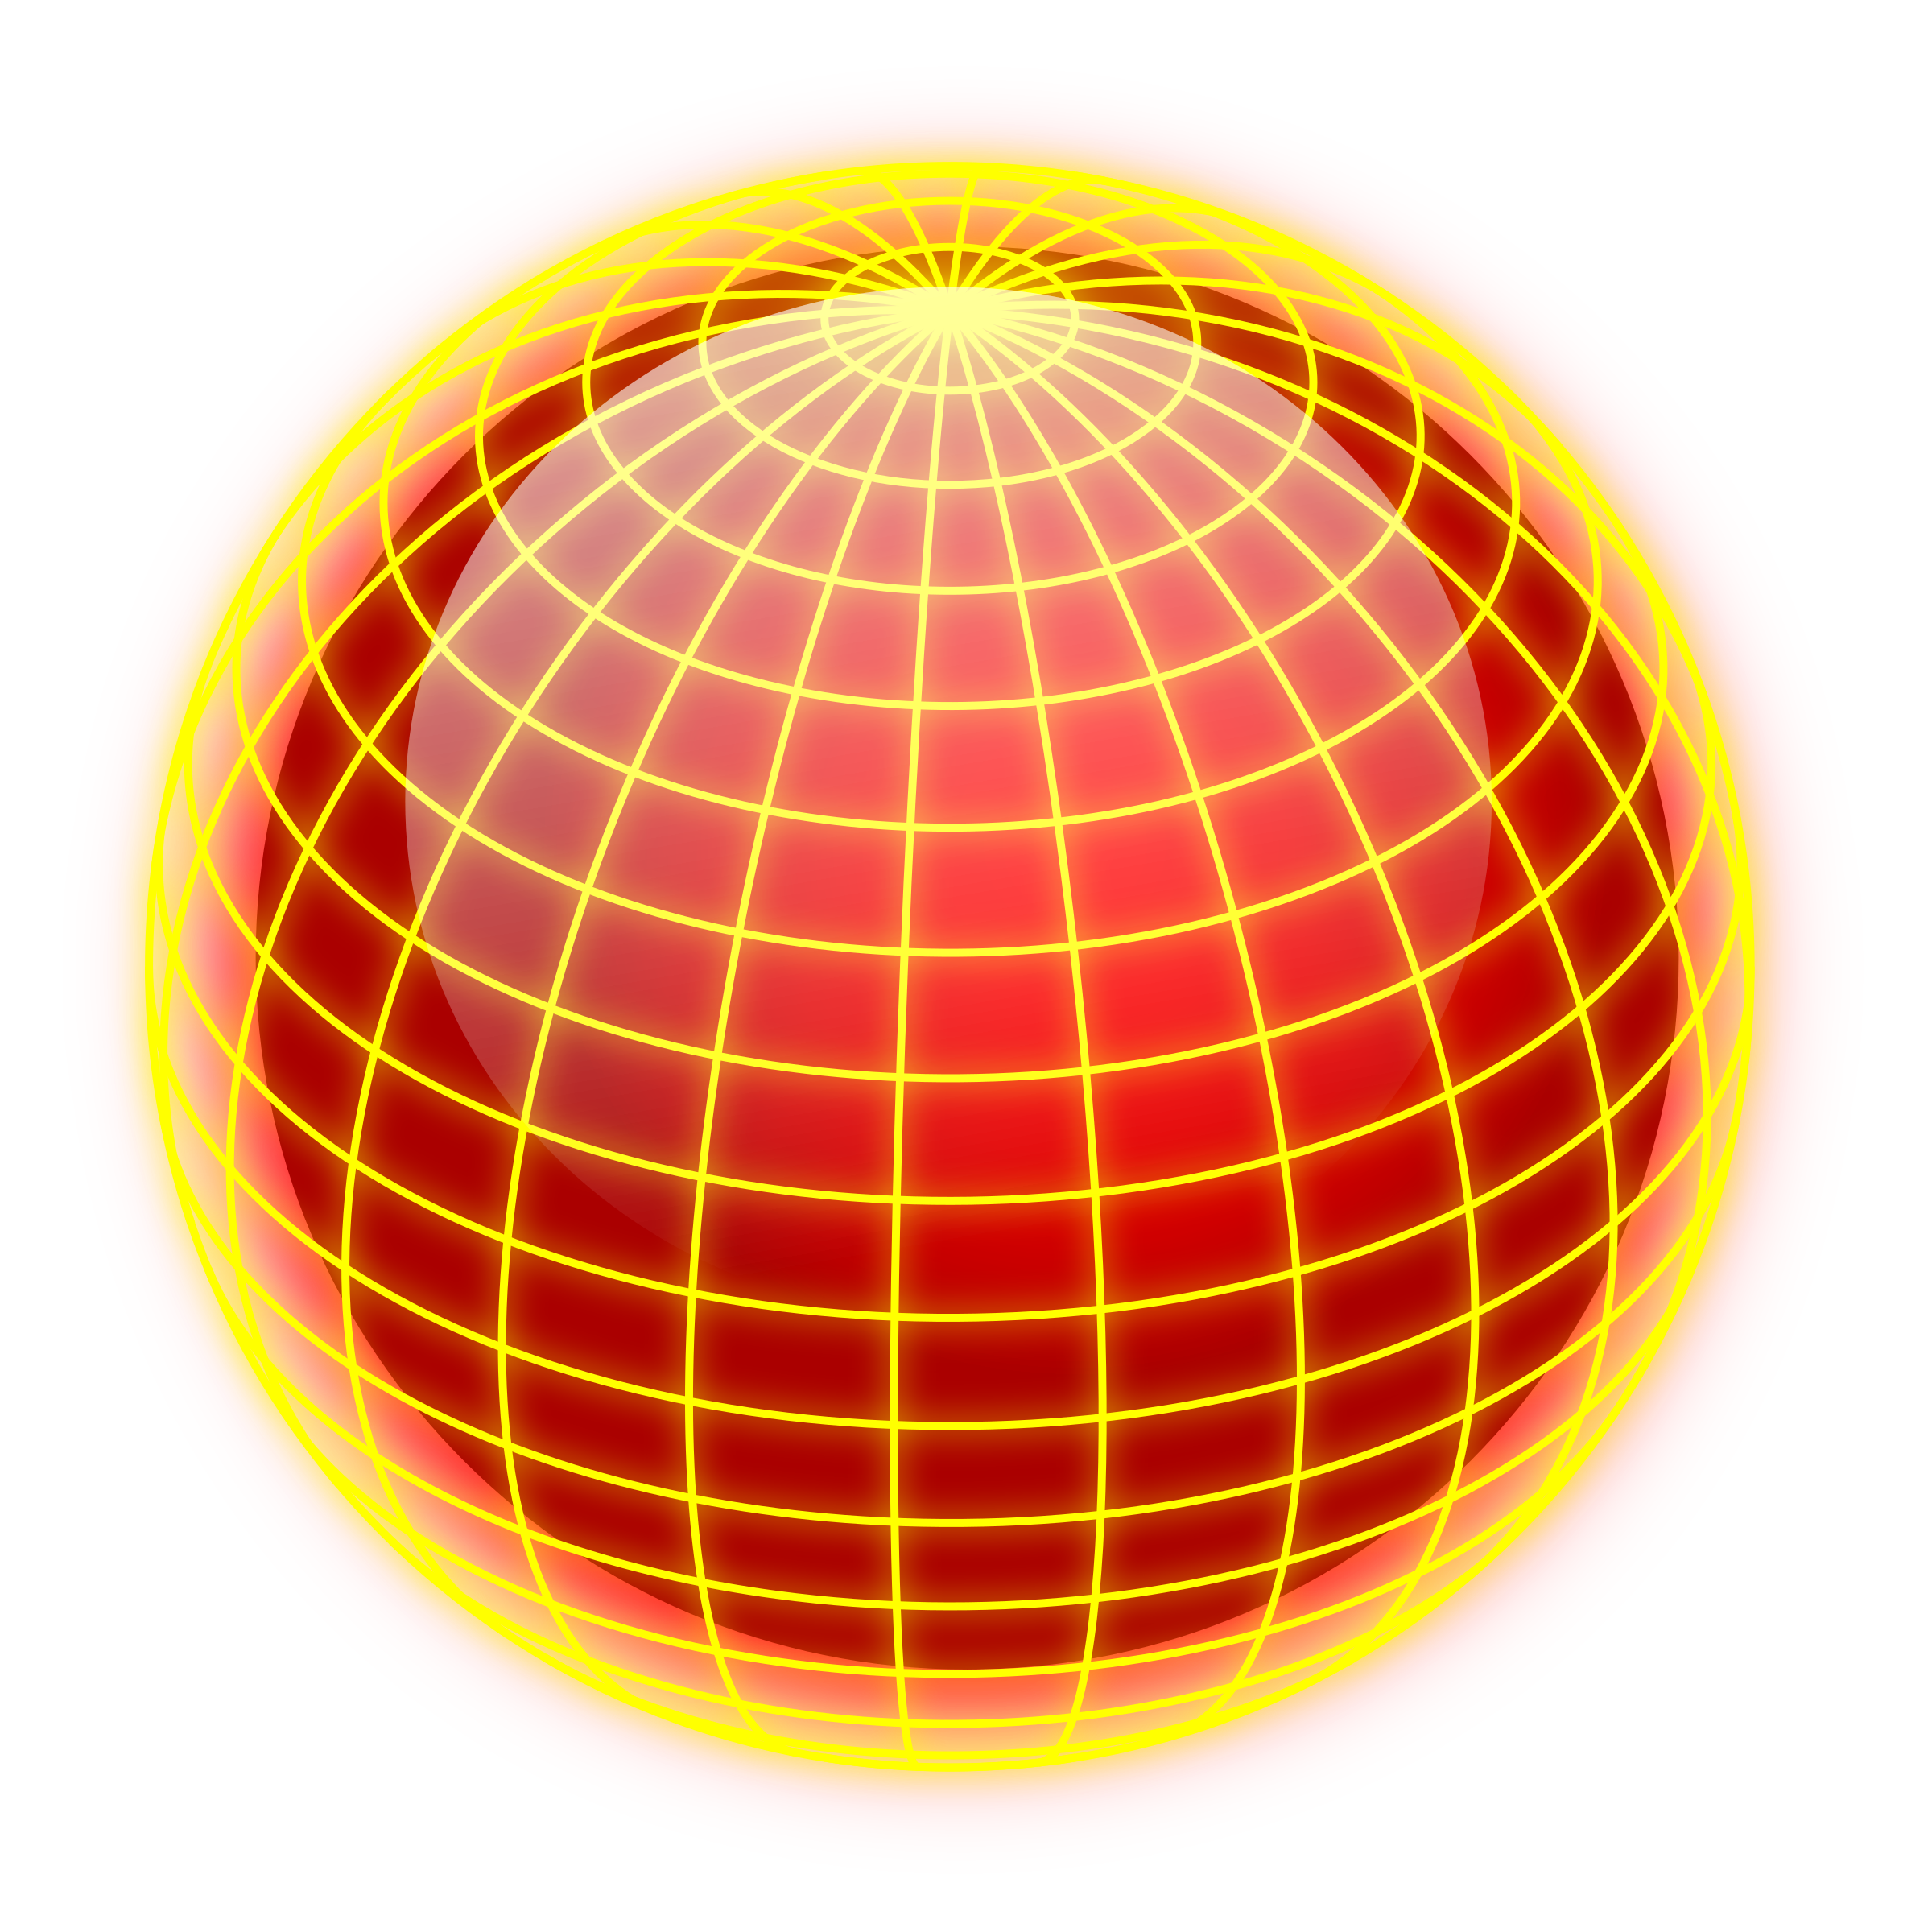 Globe clipart red. Big image png